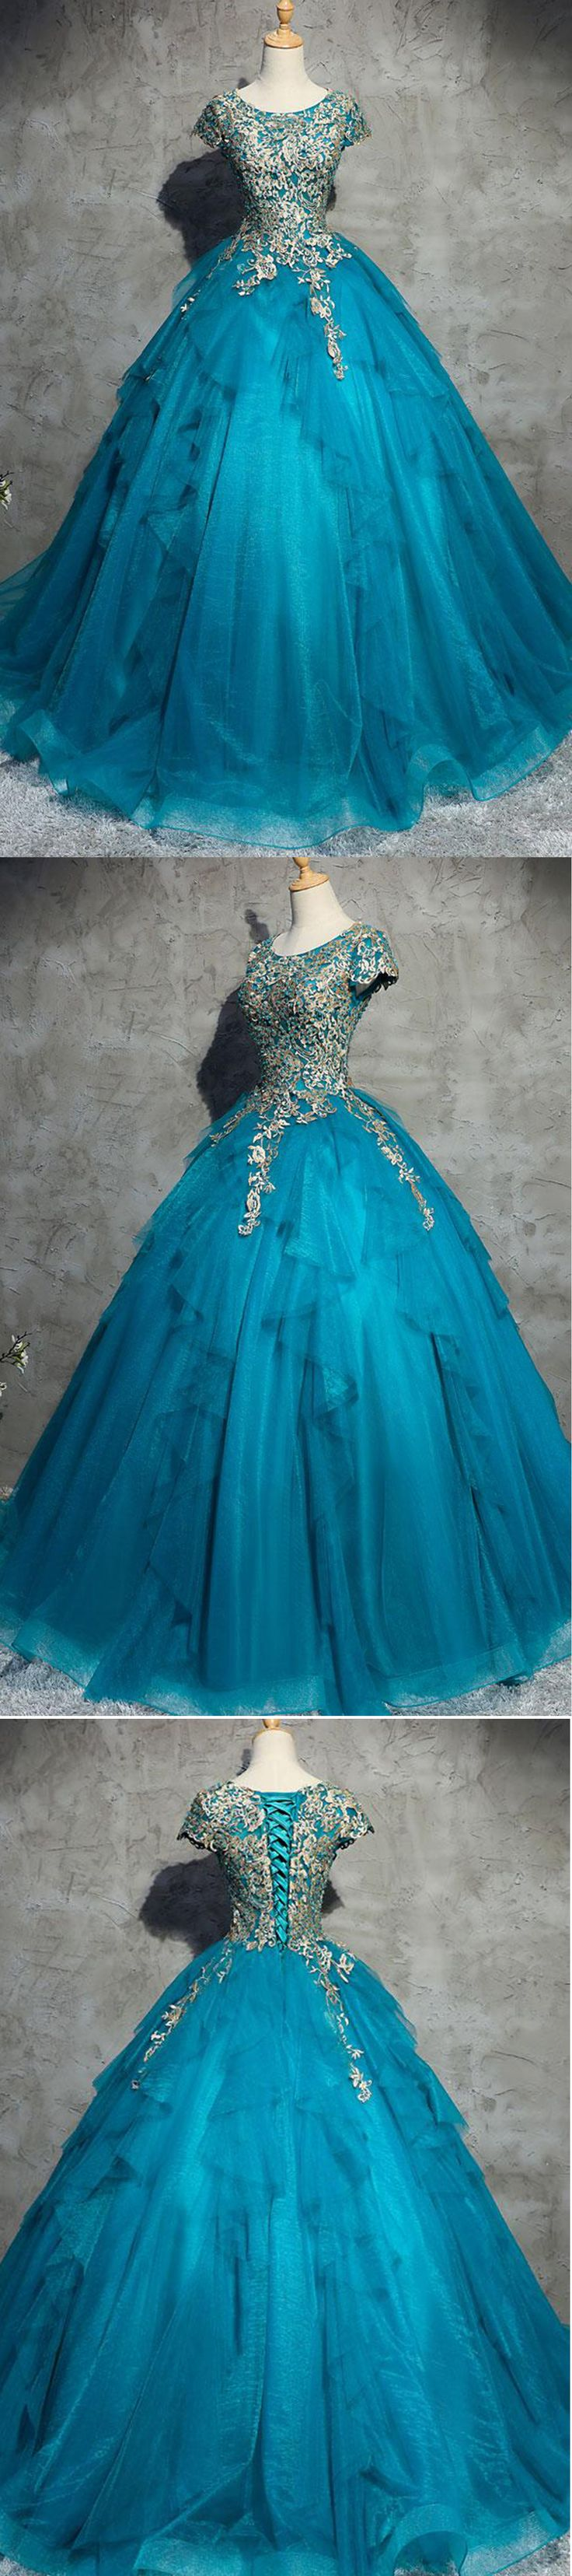 20 best Tiffany Prom 2018 New Arrivals images on Pinterest | Prom ...